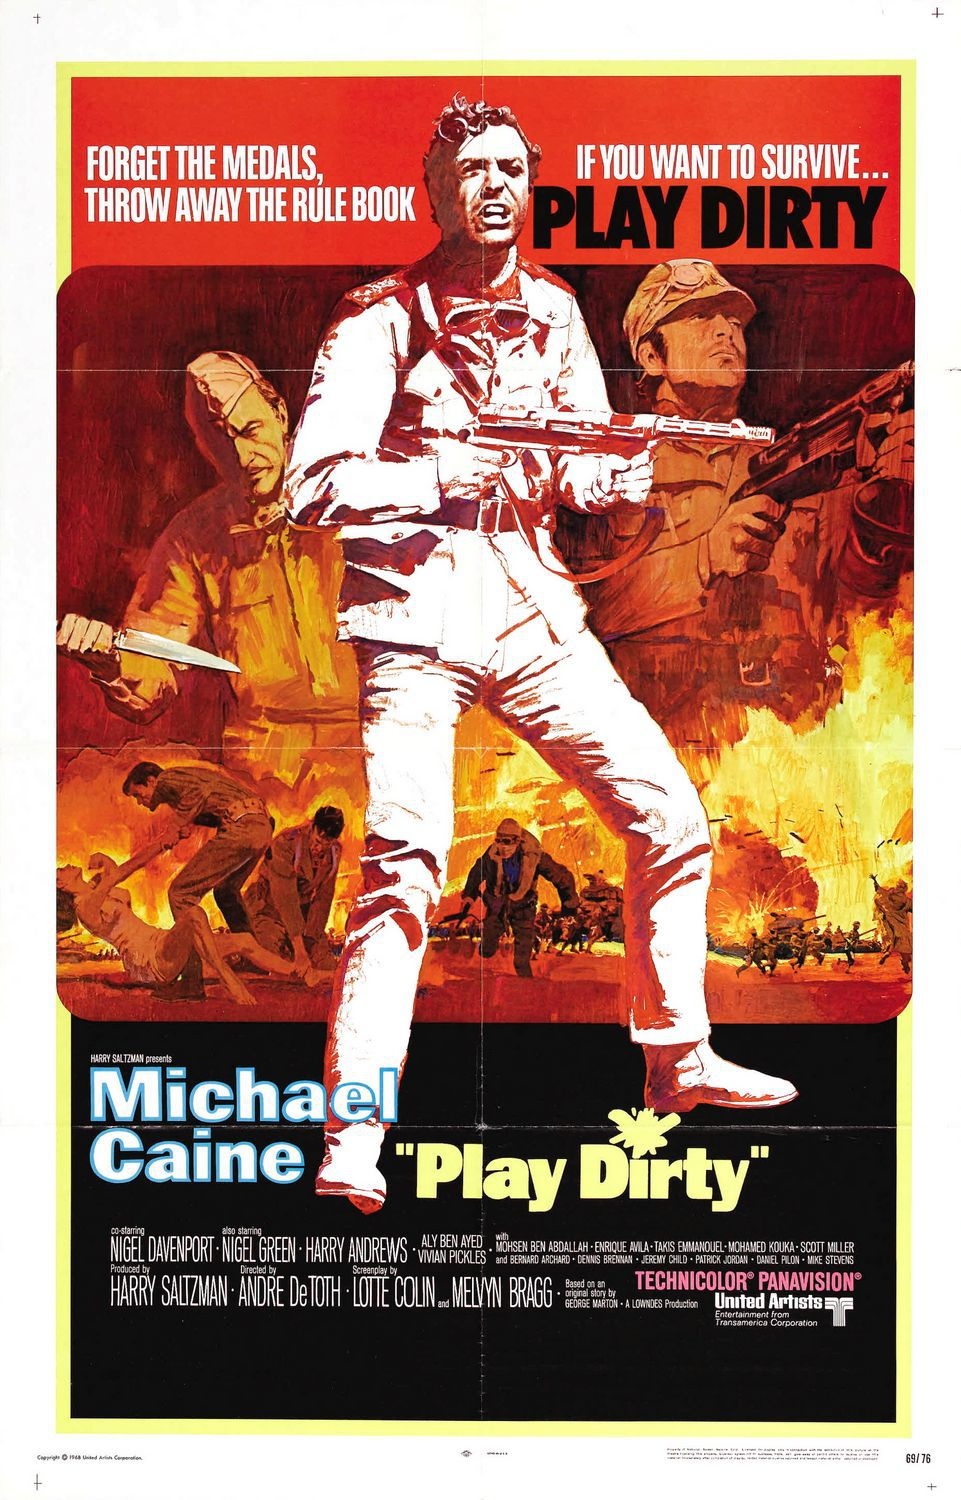 Play Dirty - Gioco Sporco - film poster